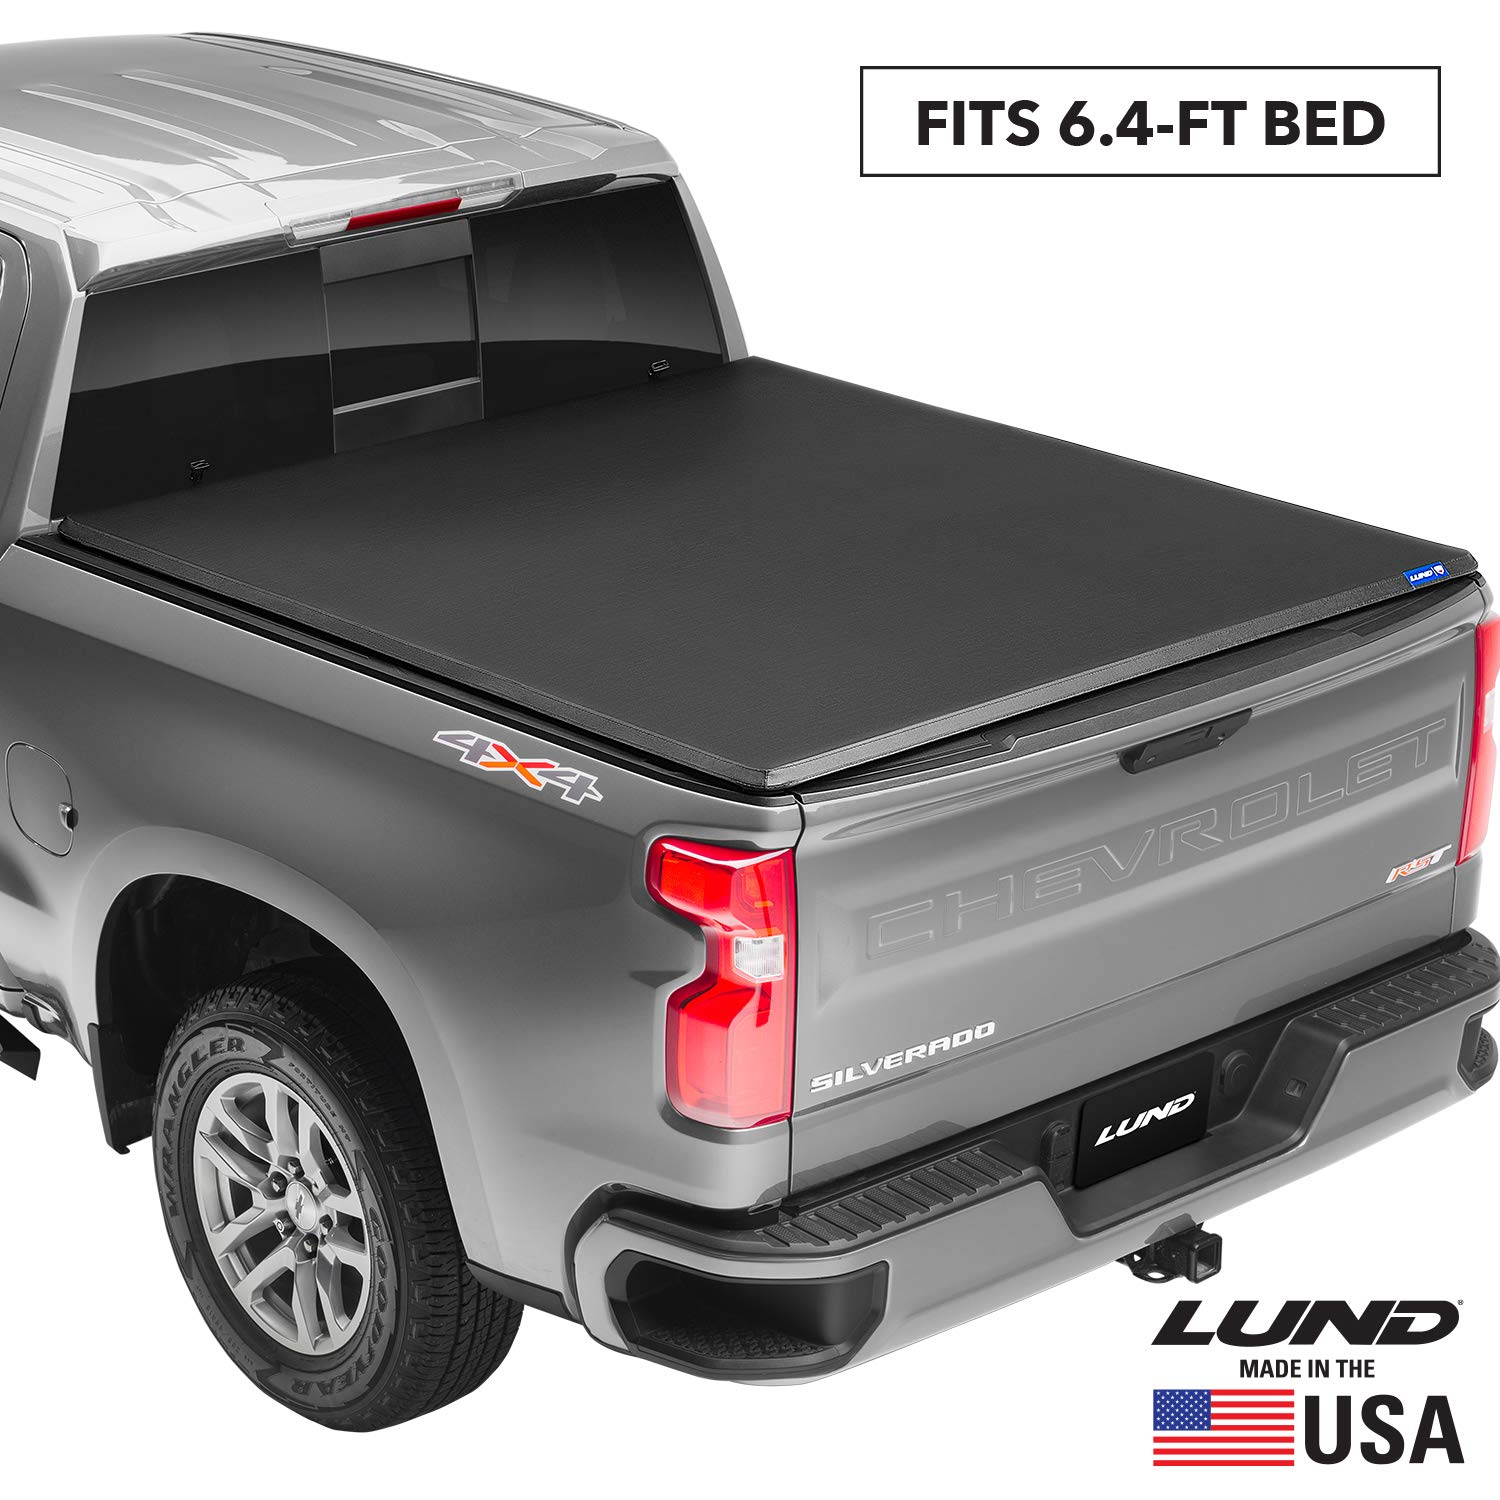 Rugged Liner Premium Soft Folding Truck Bed Tonneau Cover Fcd6509 Fits 2009 2018 19 20 Classic Dodge Ram 1500 6 4 Bed